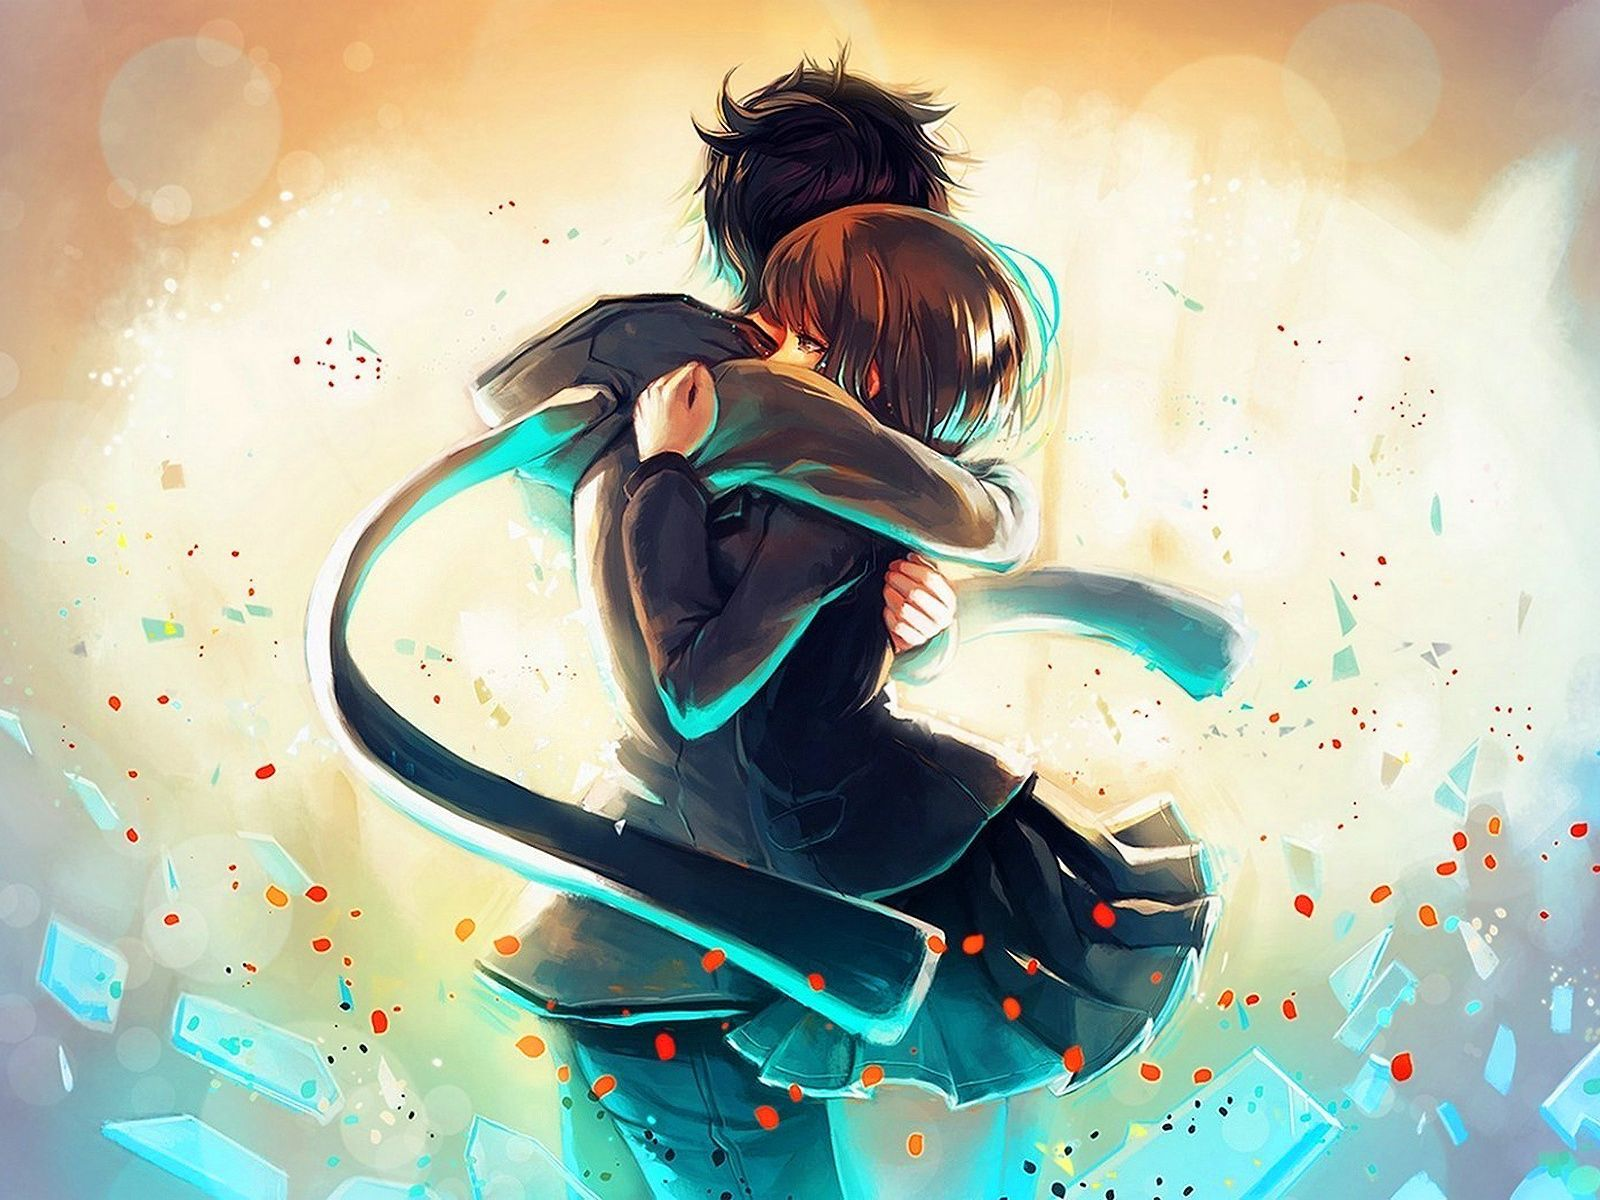 Extremely Cool Anime Boys Wallpapers - Top Free Extremely Cool Anime Boys Backgrounds ...